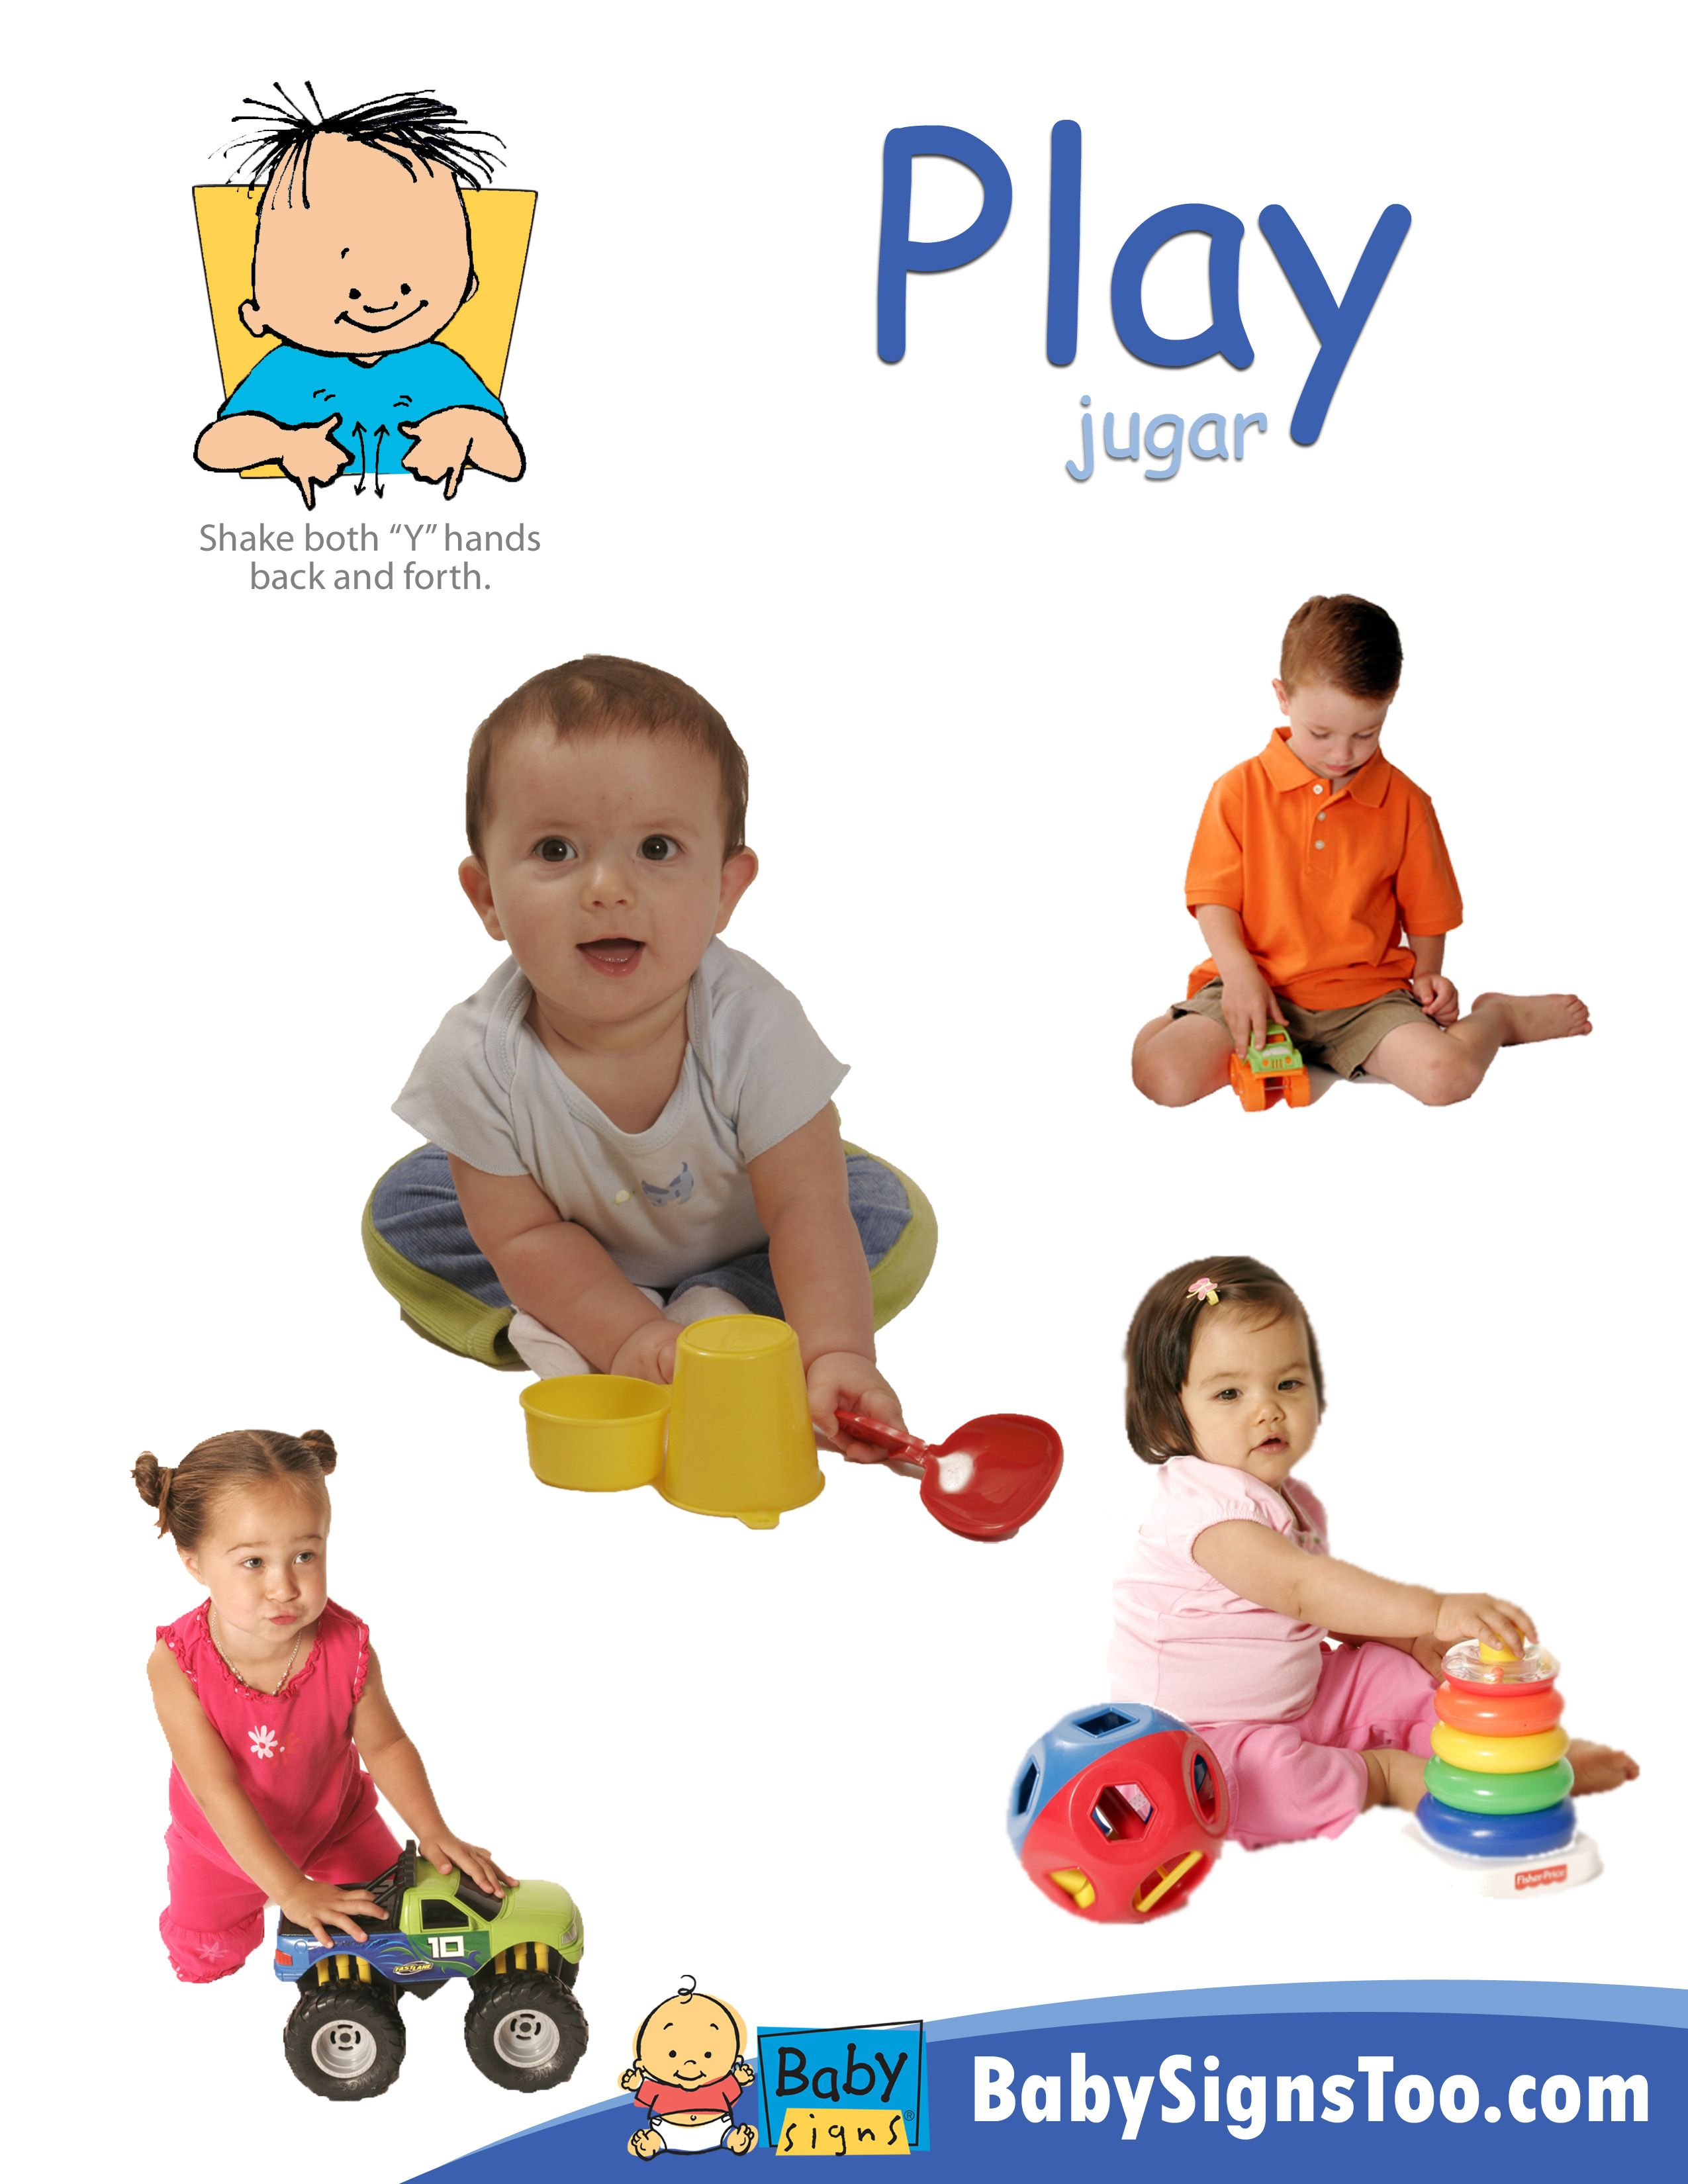 Free Printable Poster With The Sign For Play Babysigns Babysignlanguage Babysign